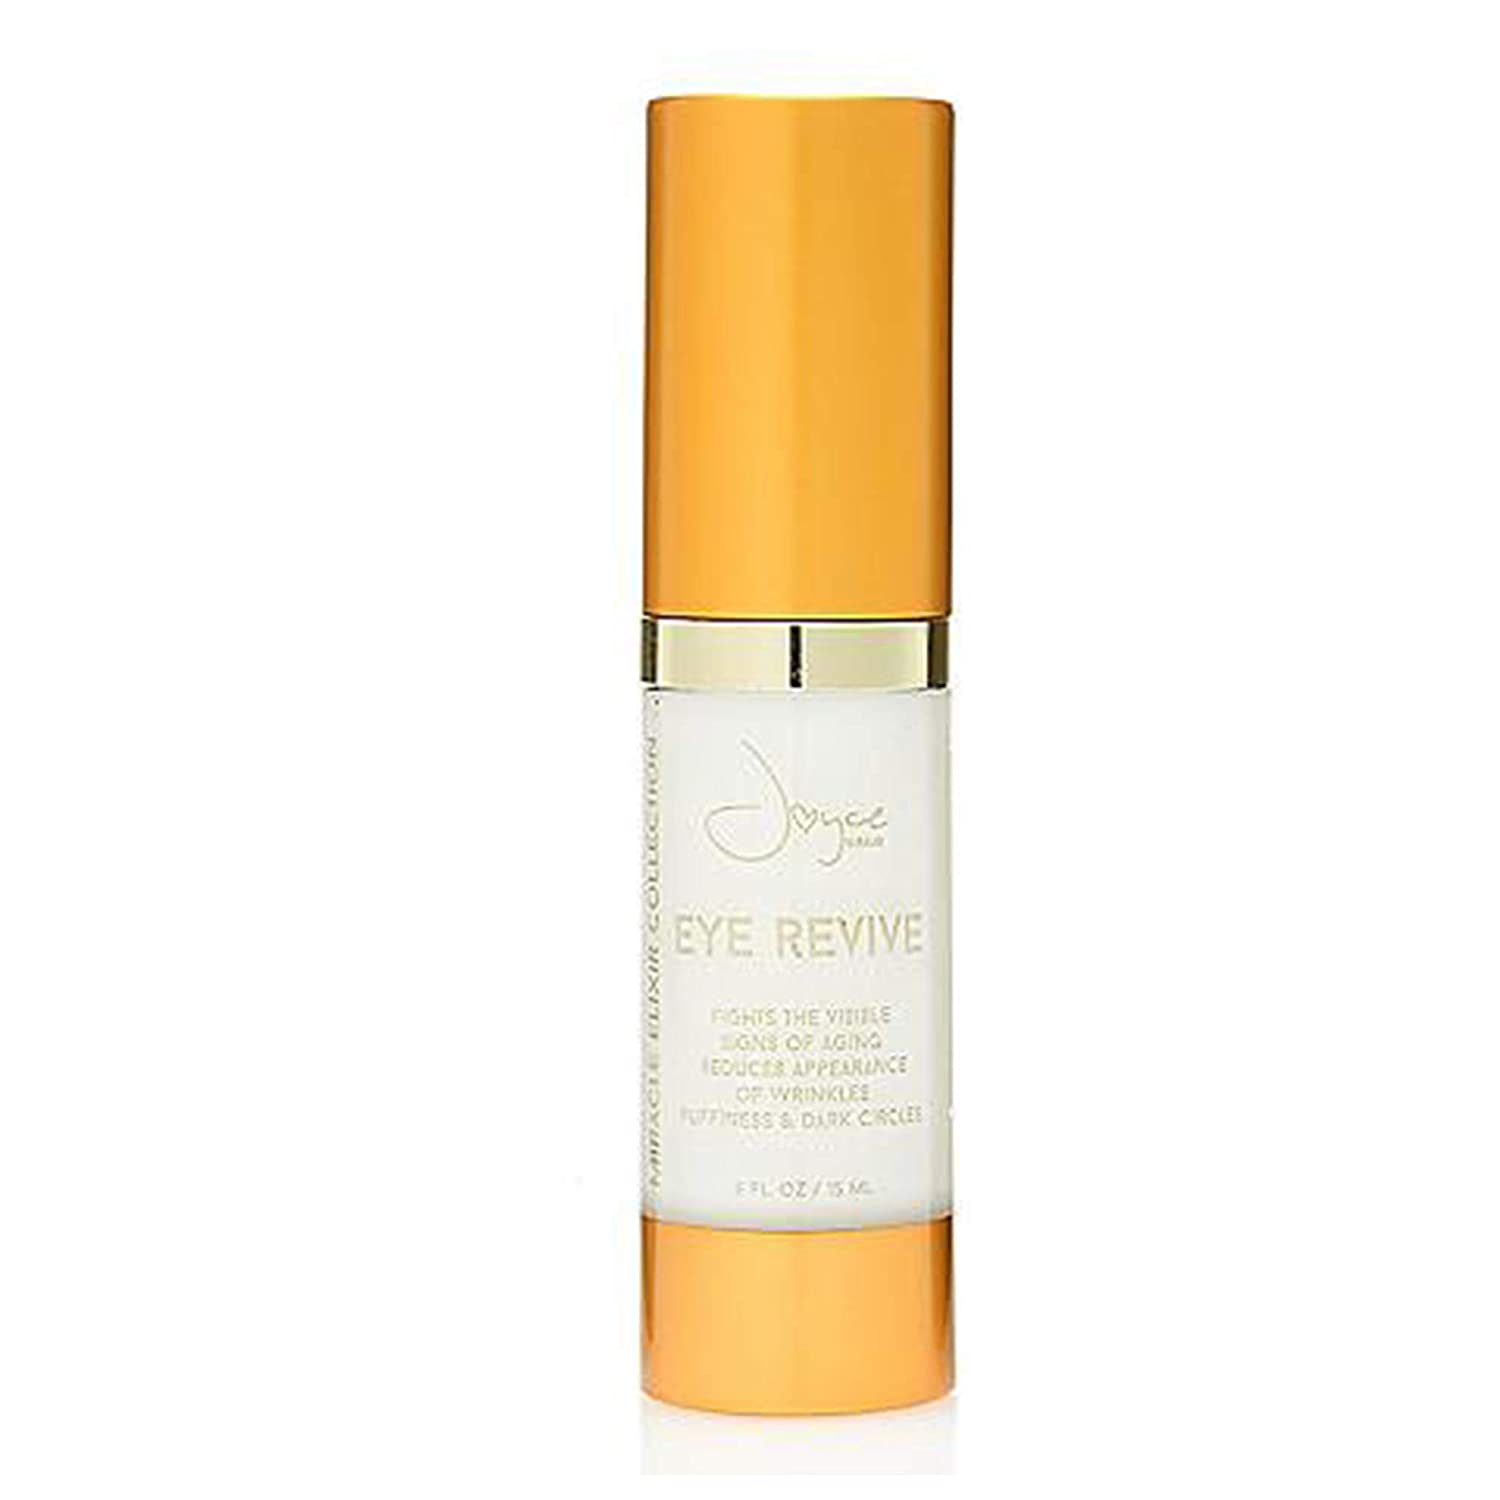 Joyce Giraud Miracle Elixir Collection Eye Revive Cream   Reduce Wrinkles, Dark Circles and Puffiness with Pure4 Oil Blend .5 OZ / 15 ML